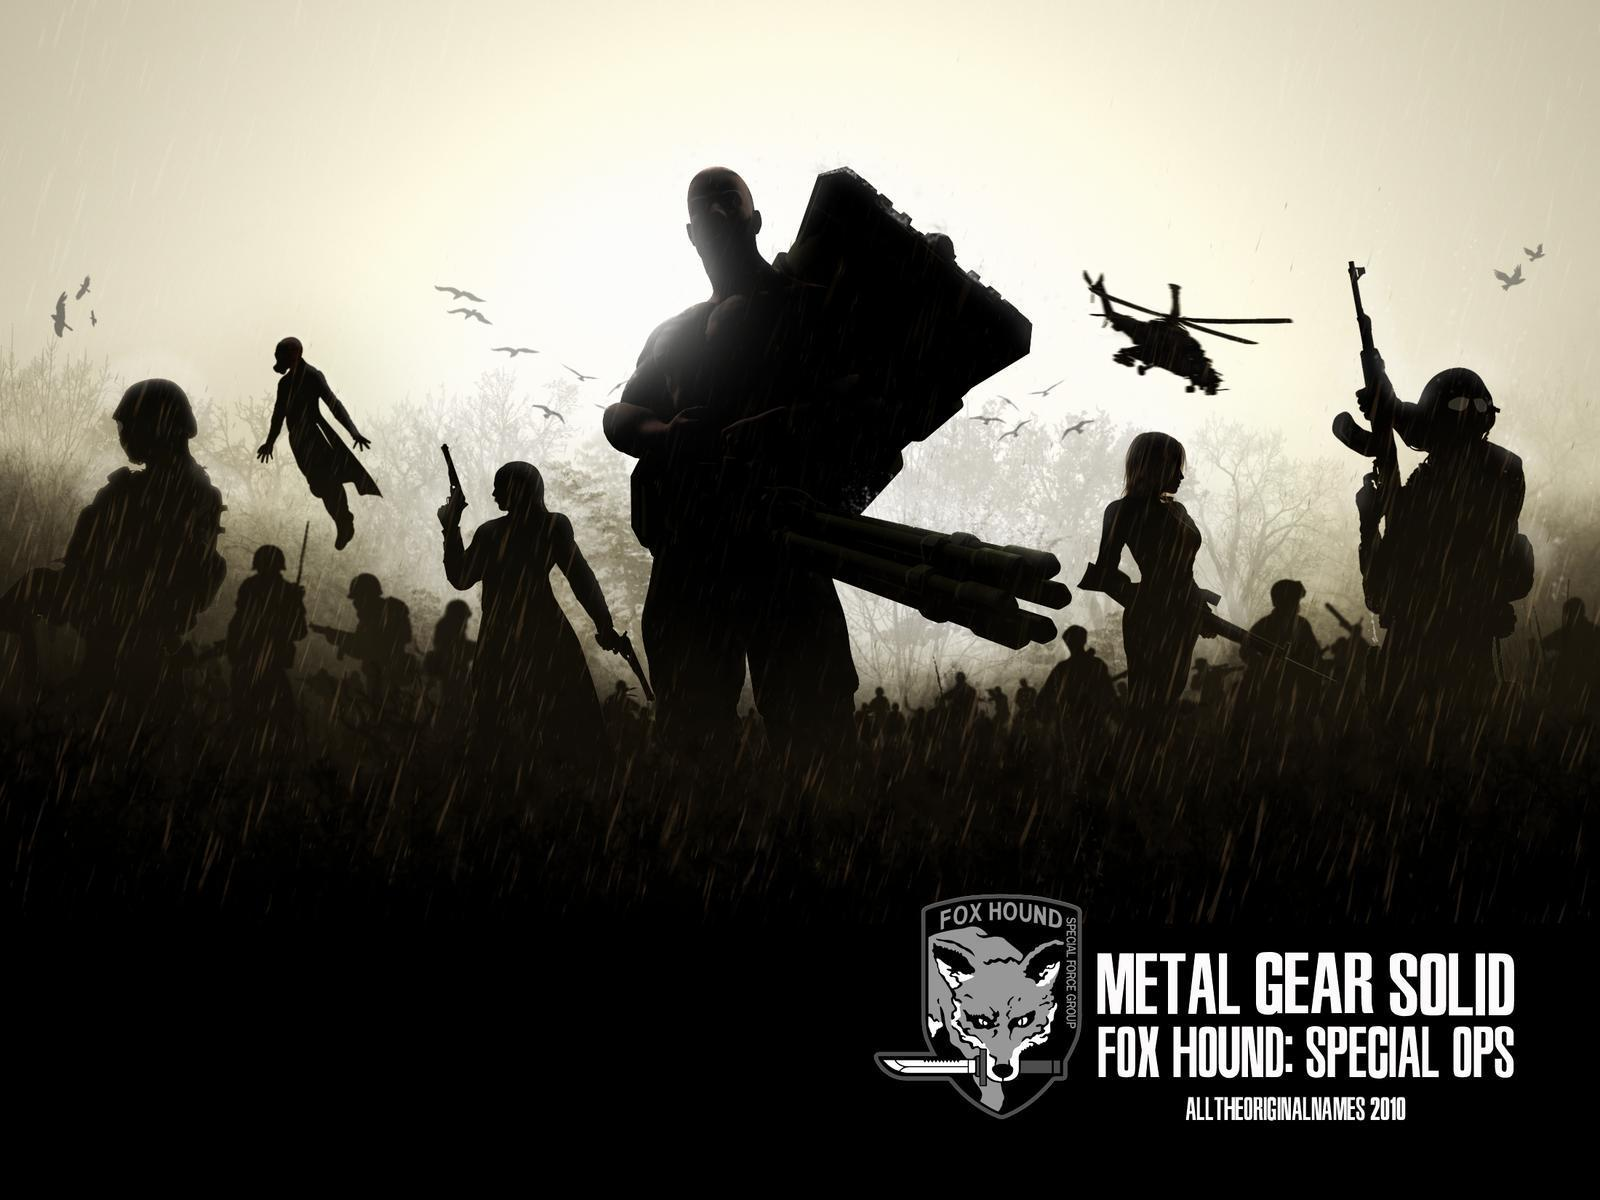 Foxhound Metal Gear Solid wallpaper 123325